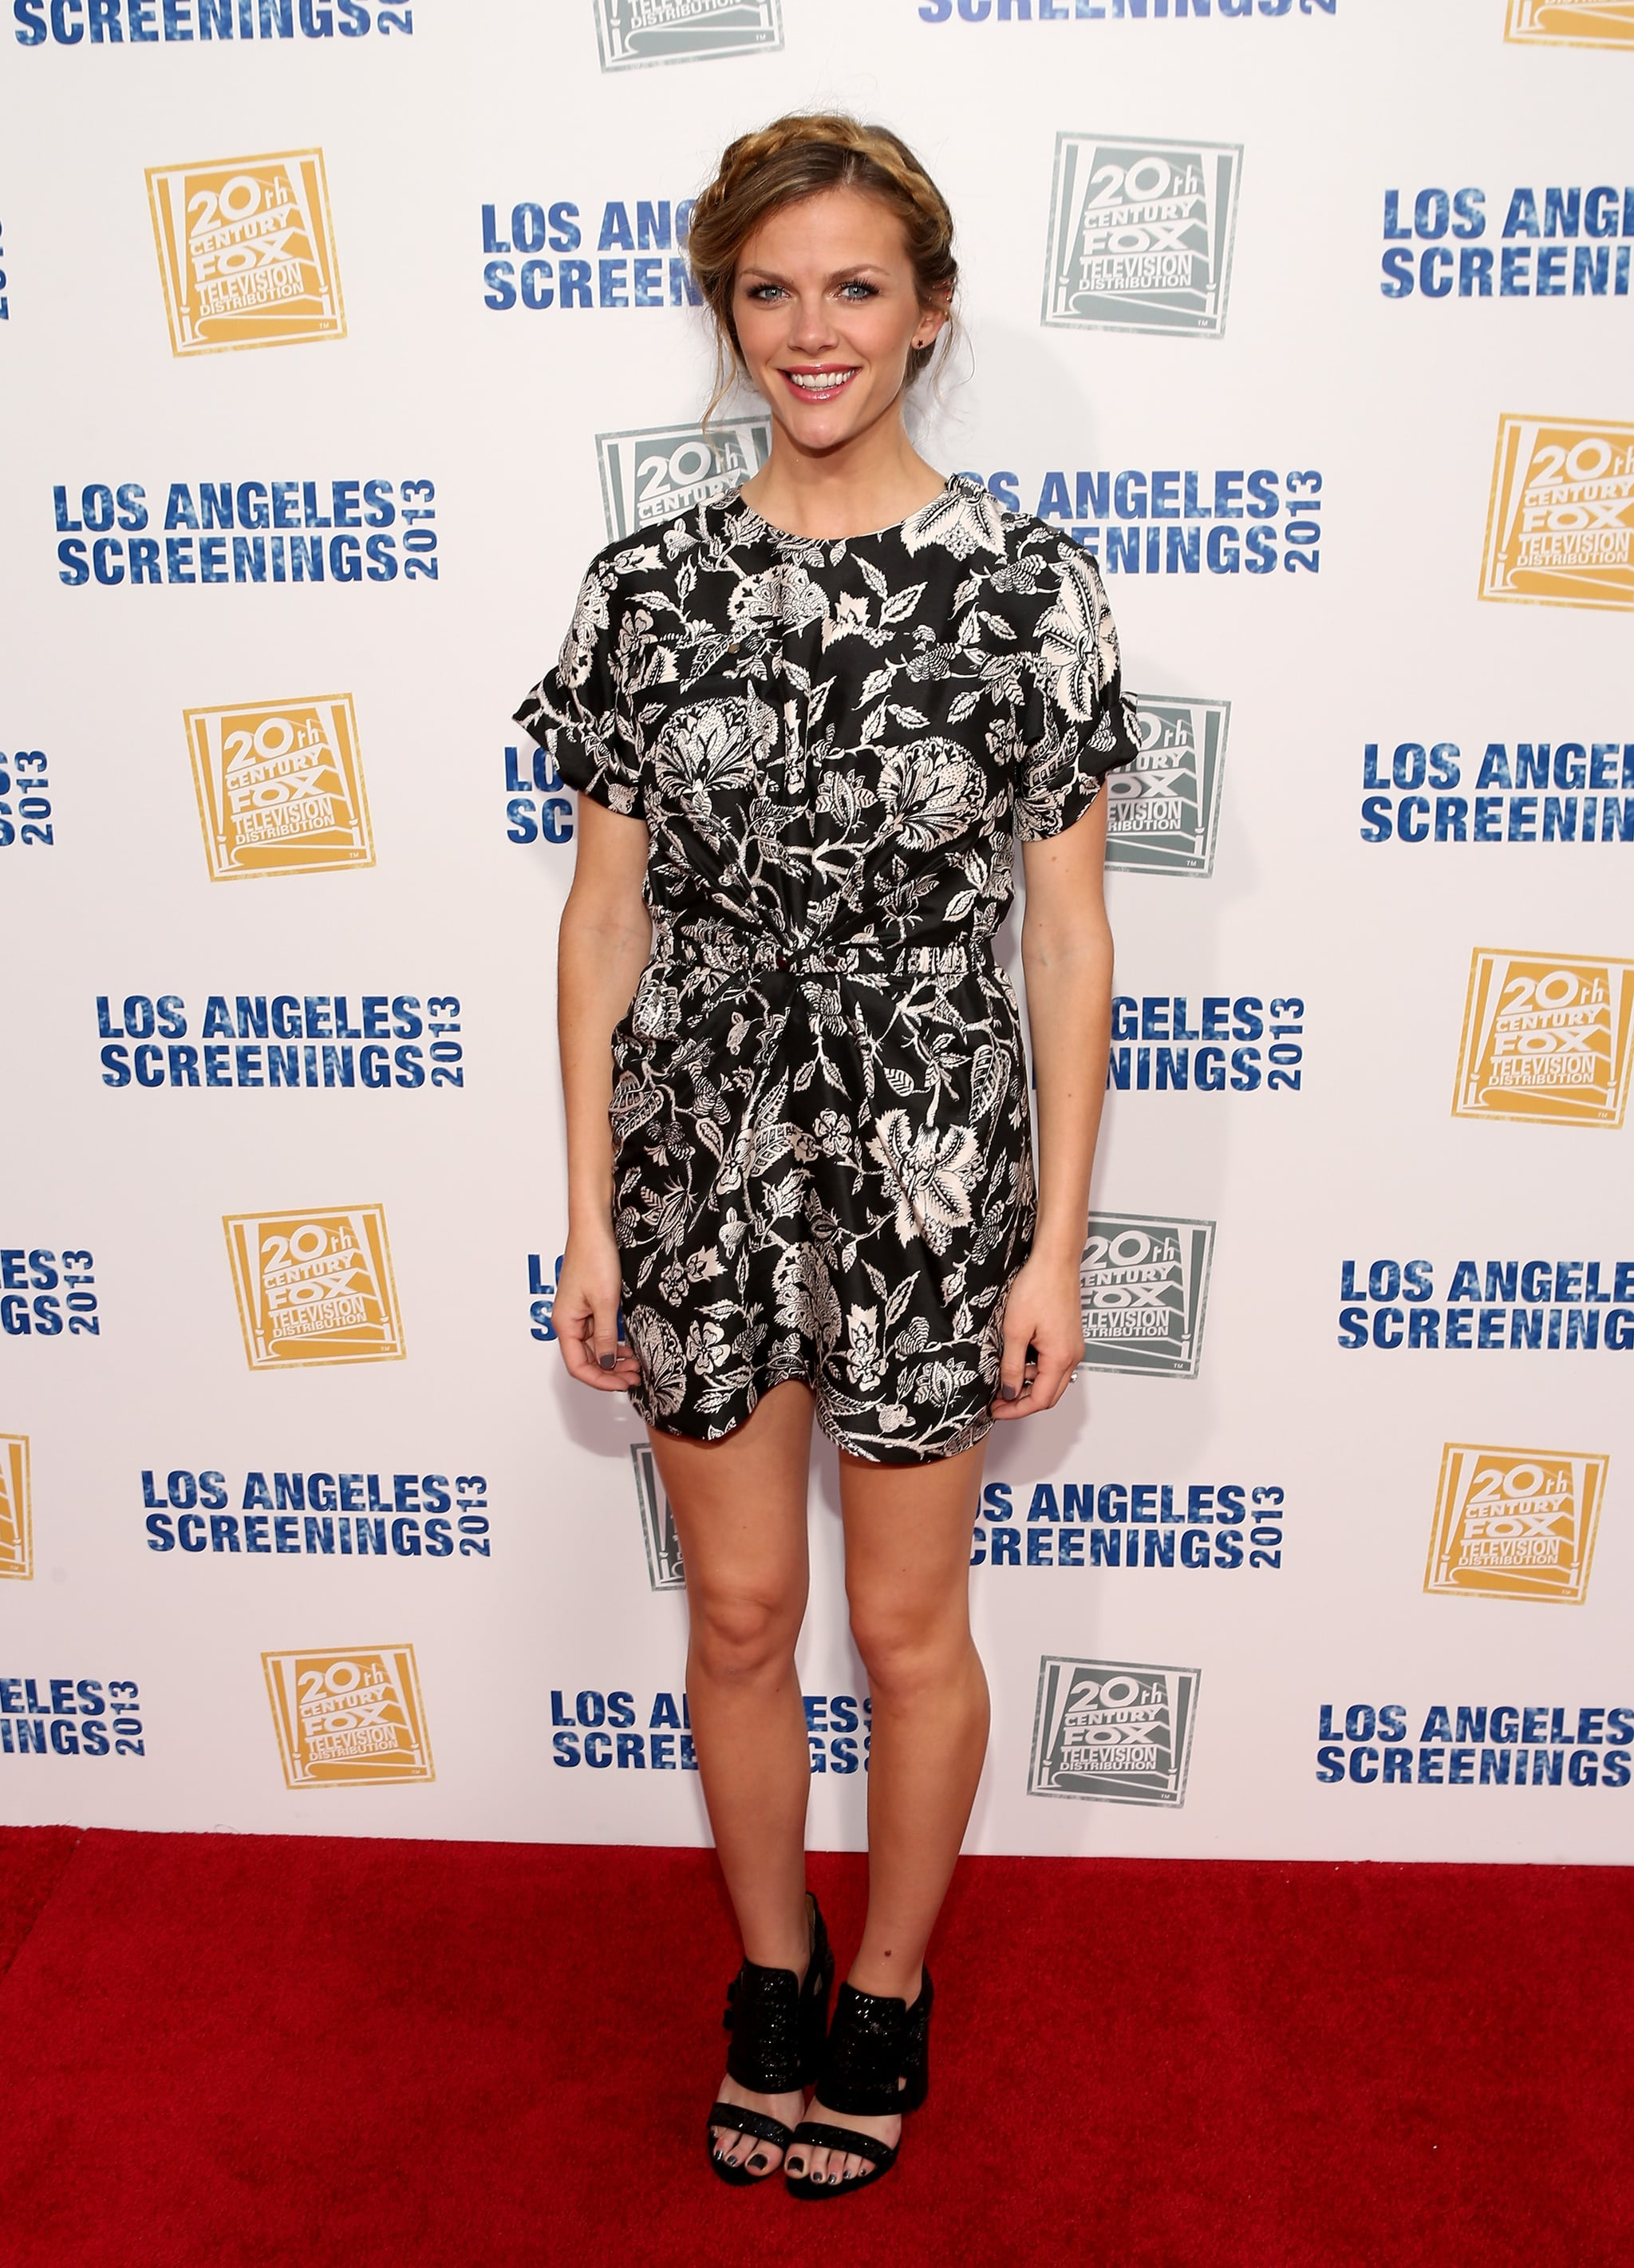 Brooklyn Decker got in on the black and white trend via a printed minidress, then added further edge via chunky black sandals.